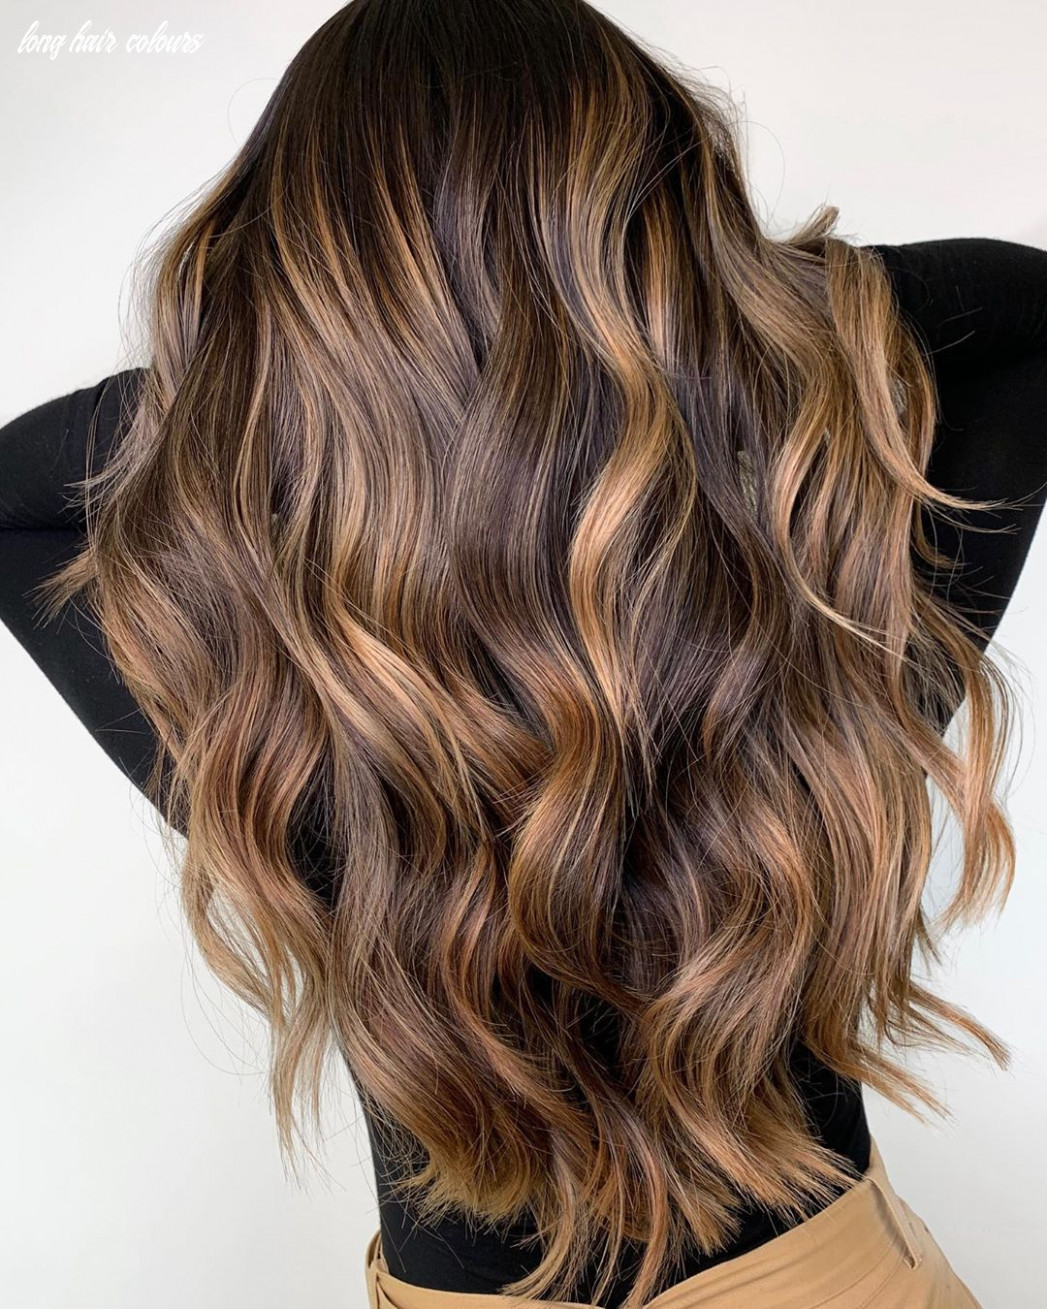 9 Best Hair Colors - New Hair Color Ideas & Trends for 9 ...